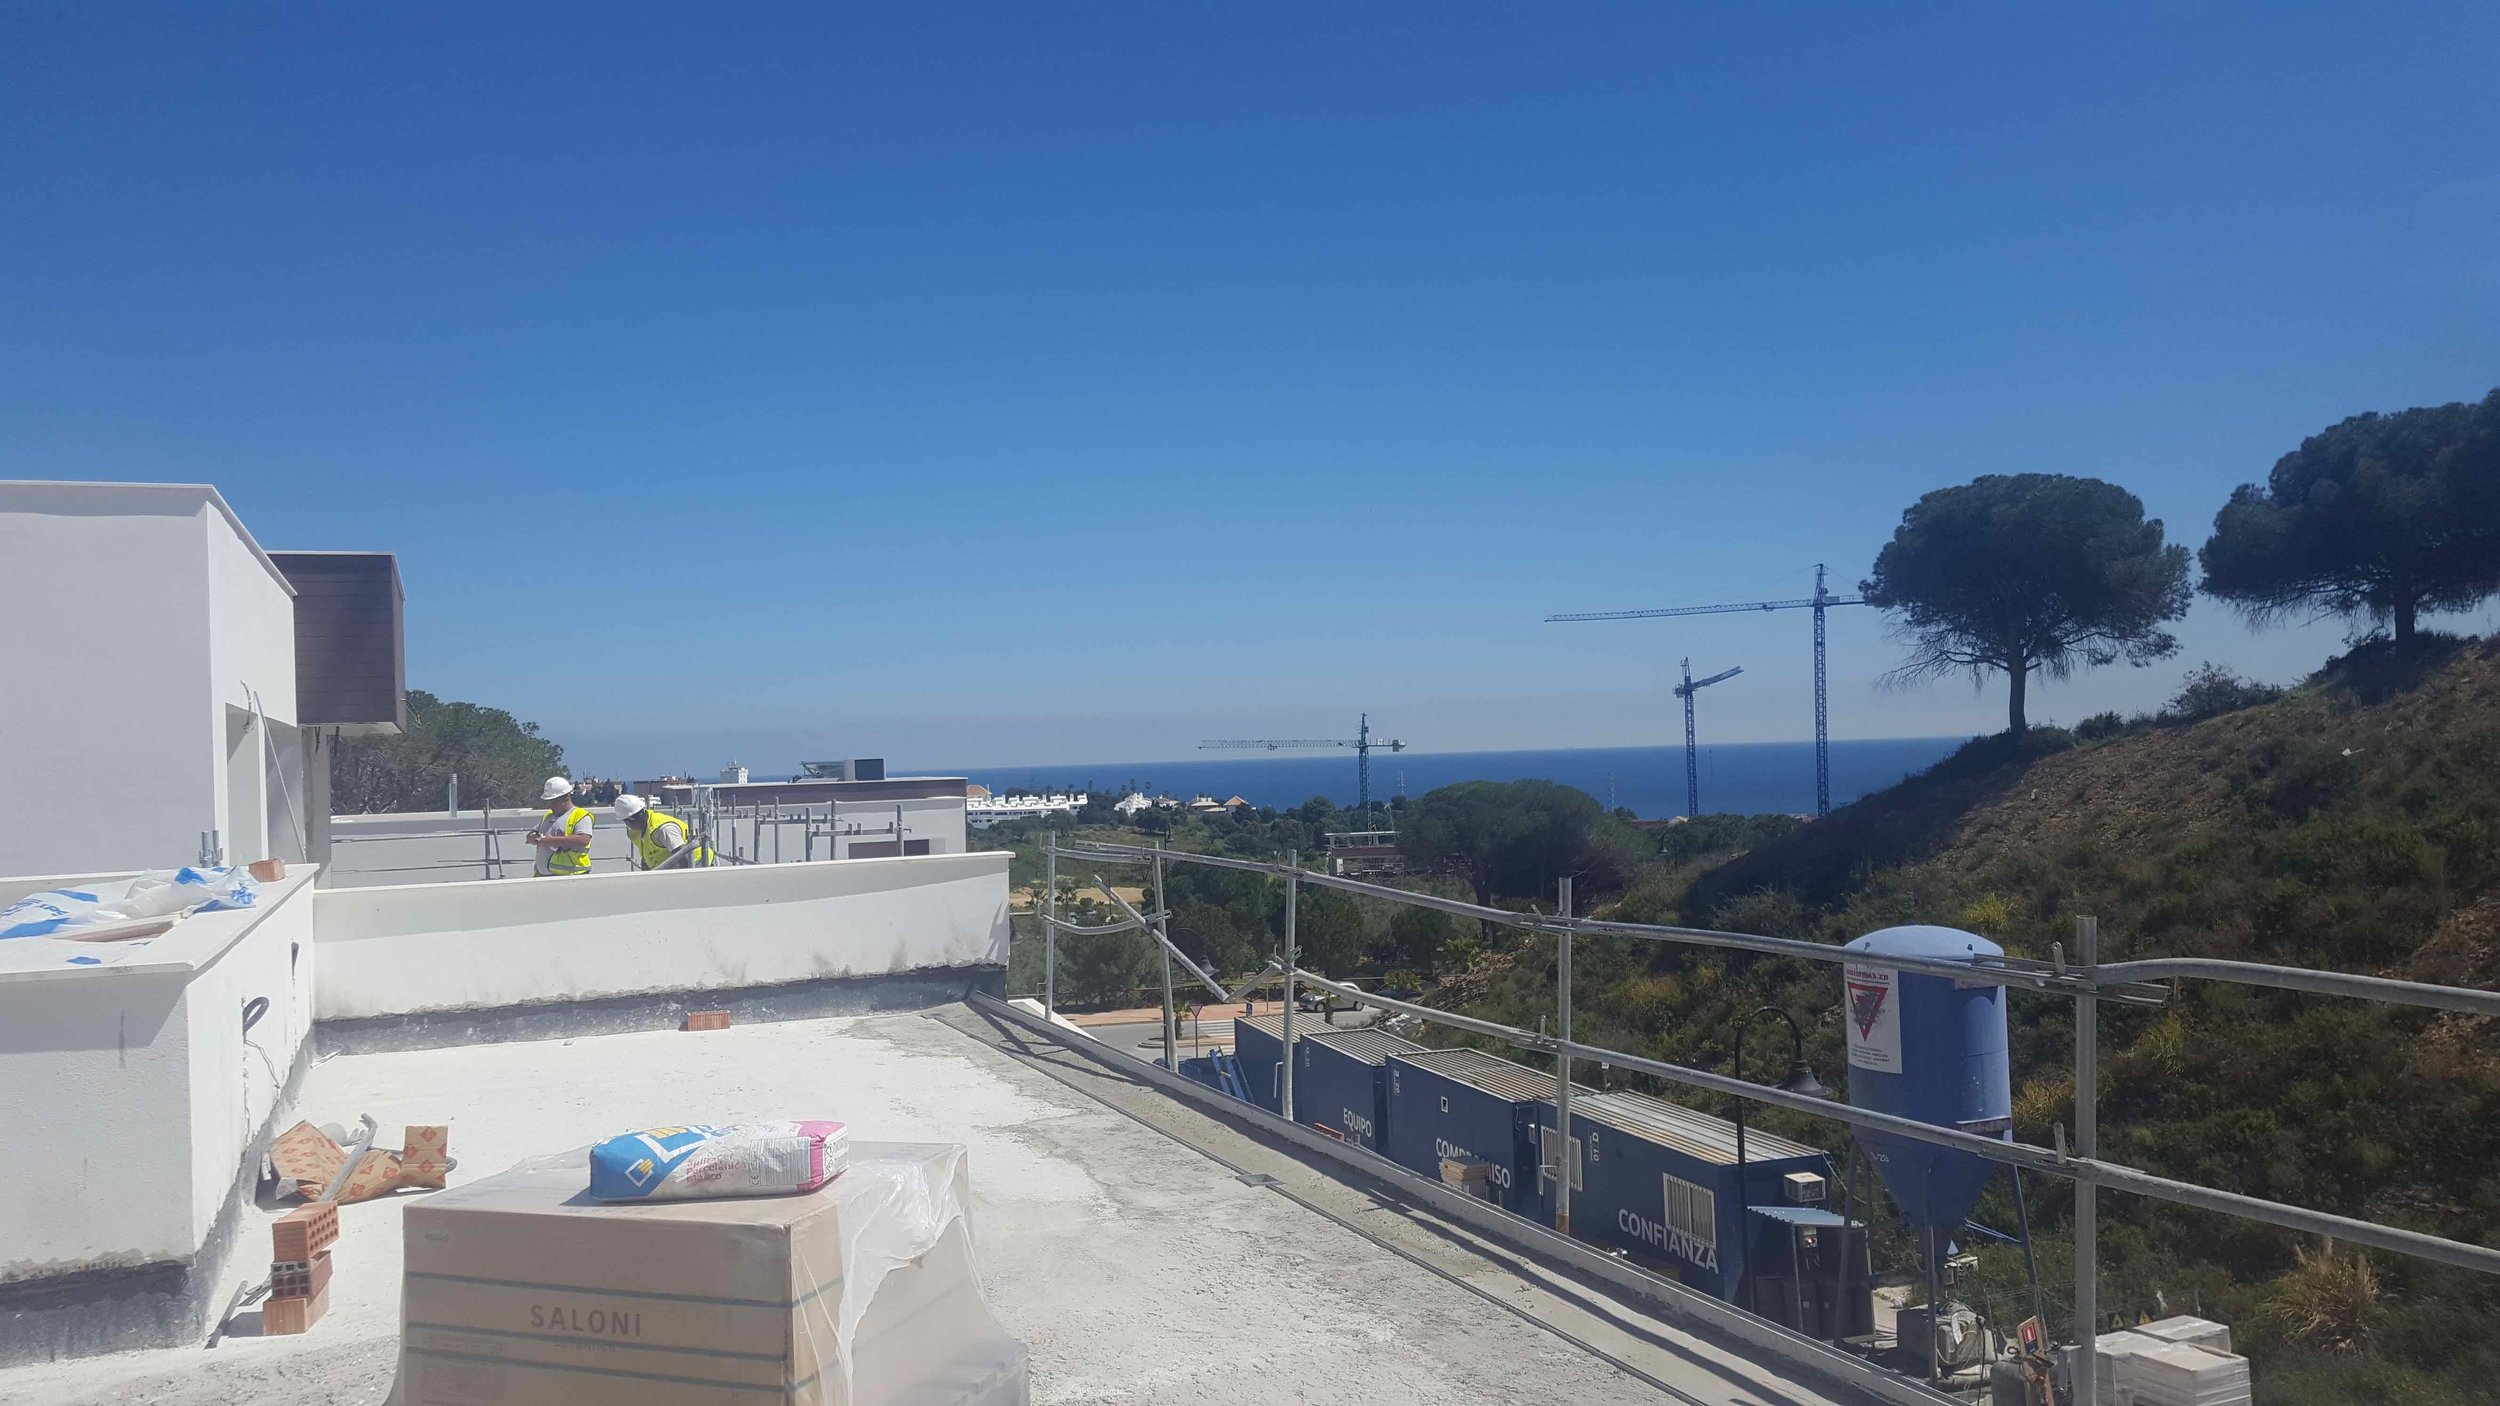 18/04/2018 the view from villa 2